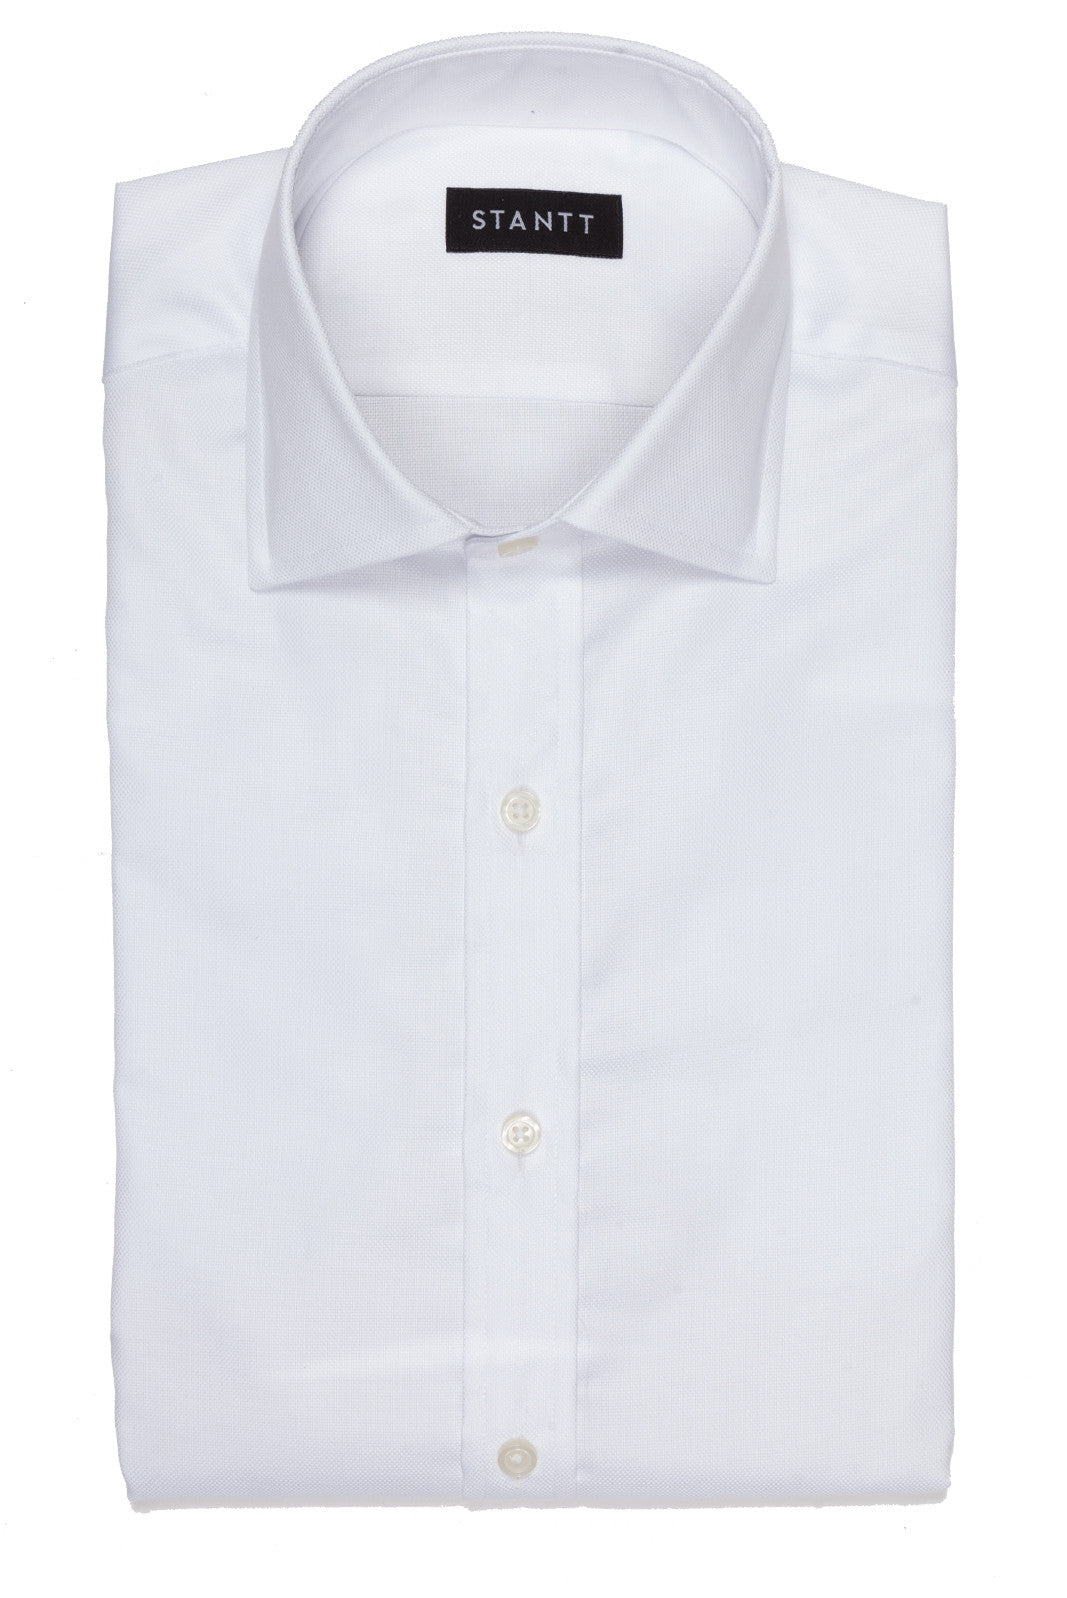 White Royal Oxford: Modified-Spread Collar, Barrel Cuff